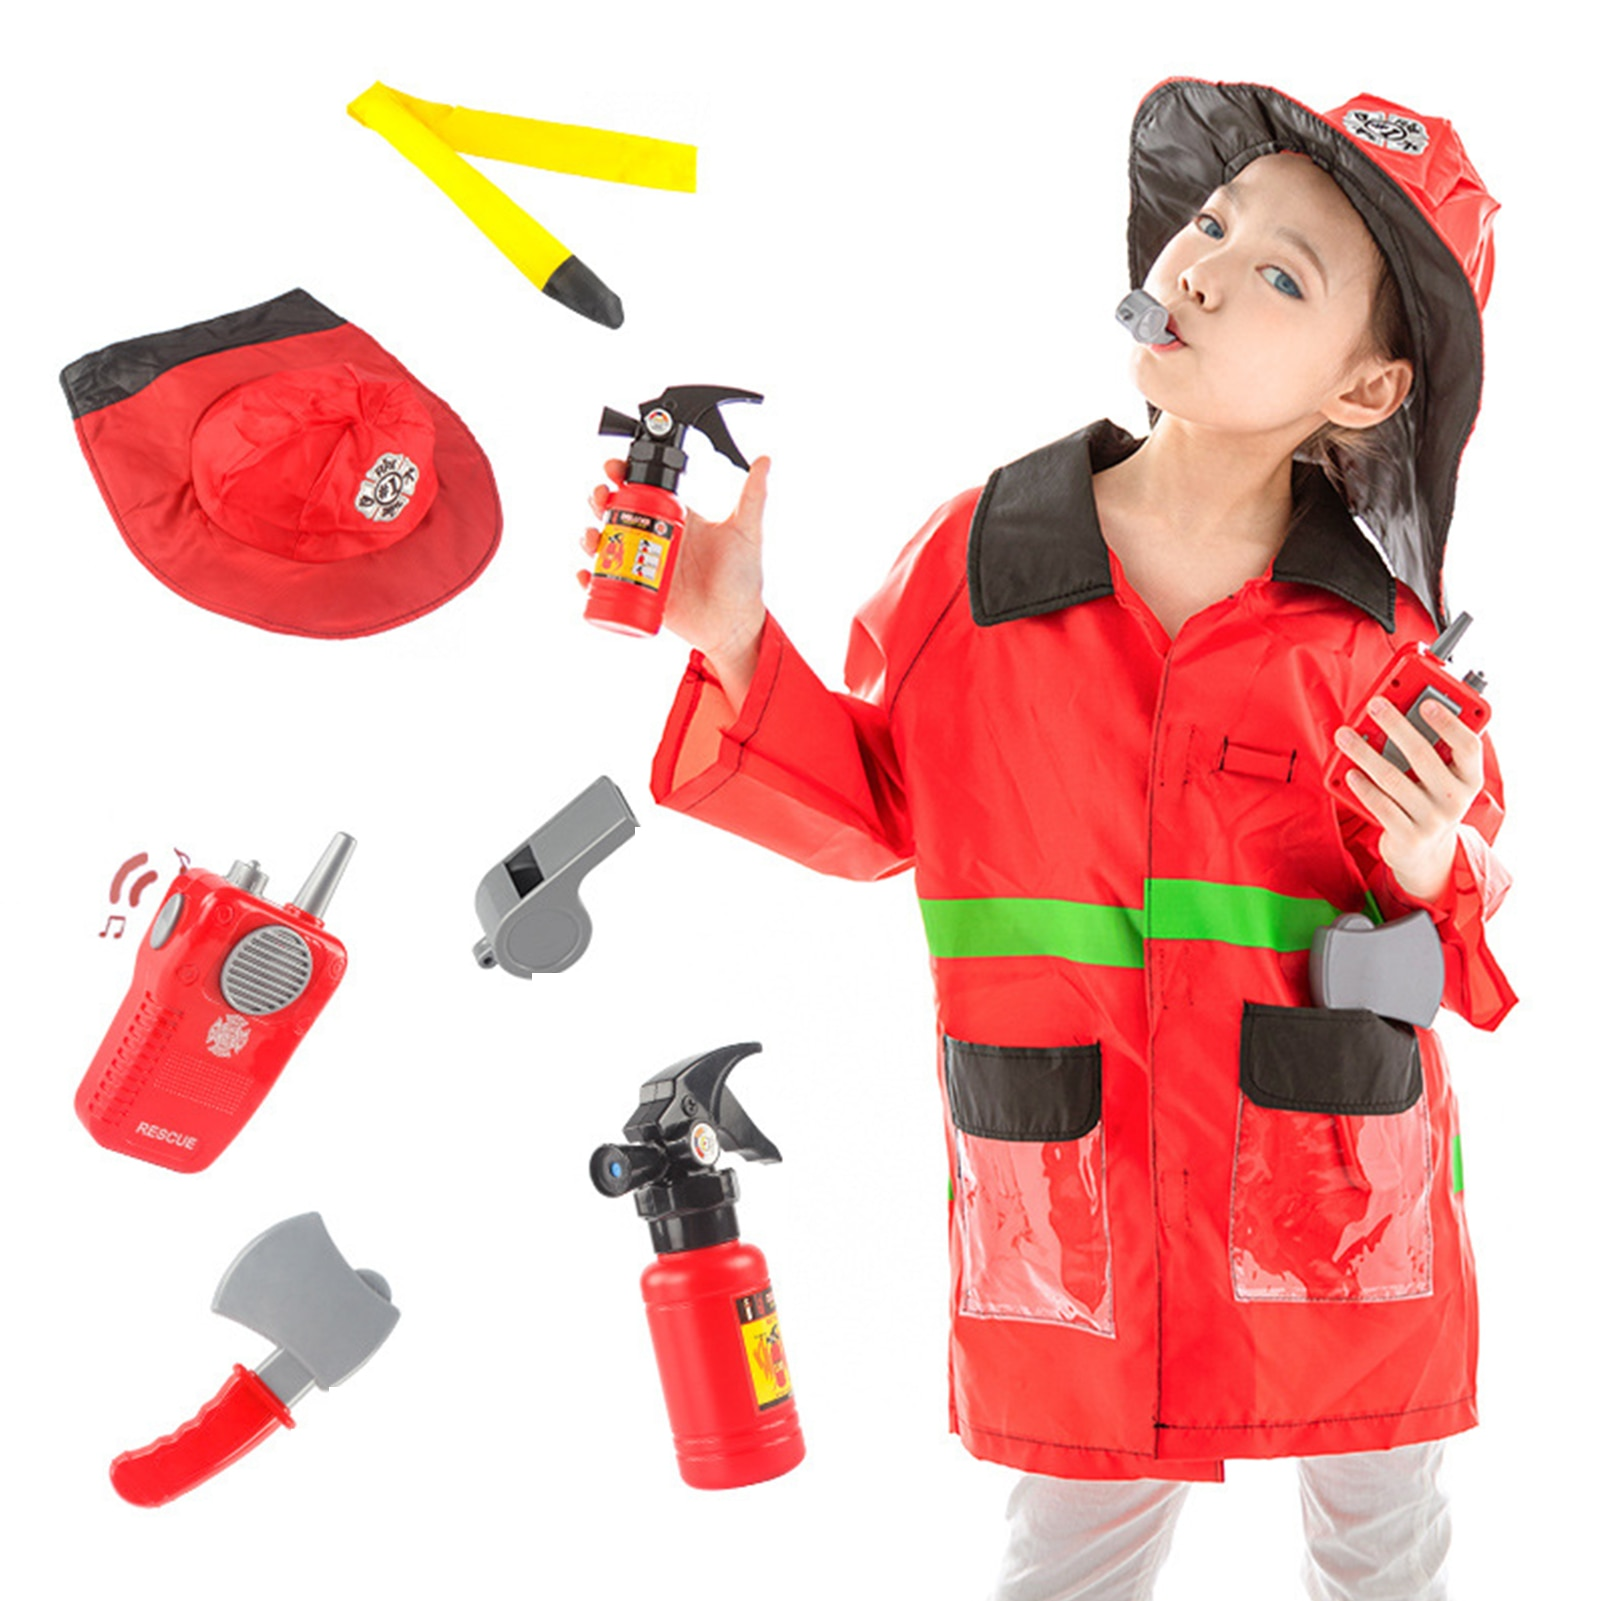 Fire-fighting Costumes Pretend Toy For Kids Funny Firefighter Dress Up Role Play Toy Accessories Child Firefighter Costumes Toy недорого